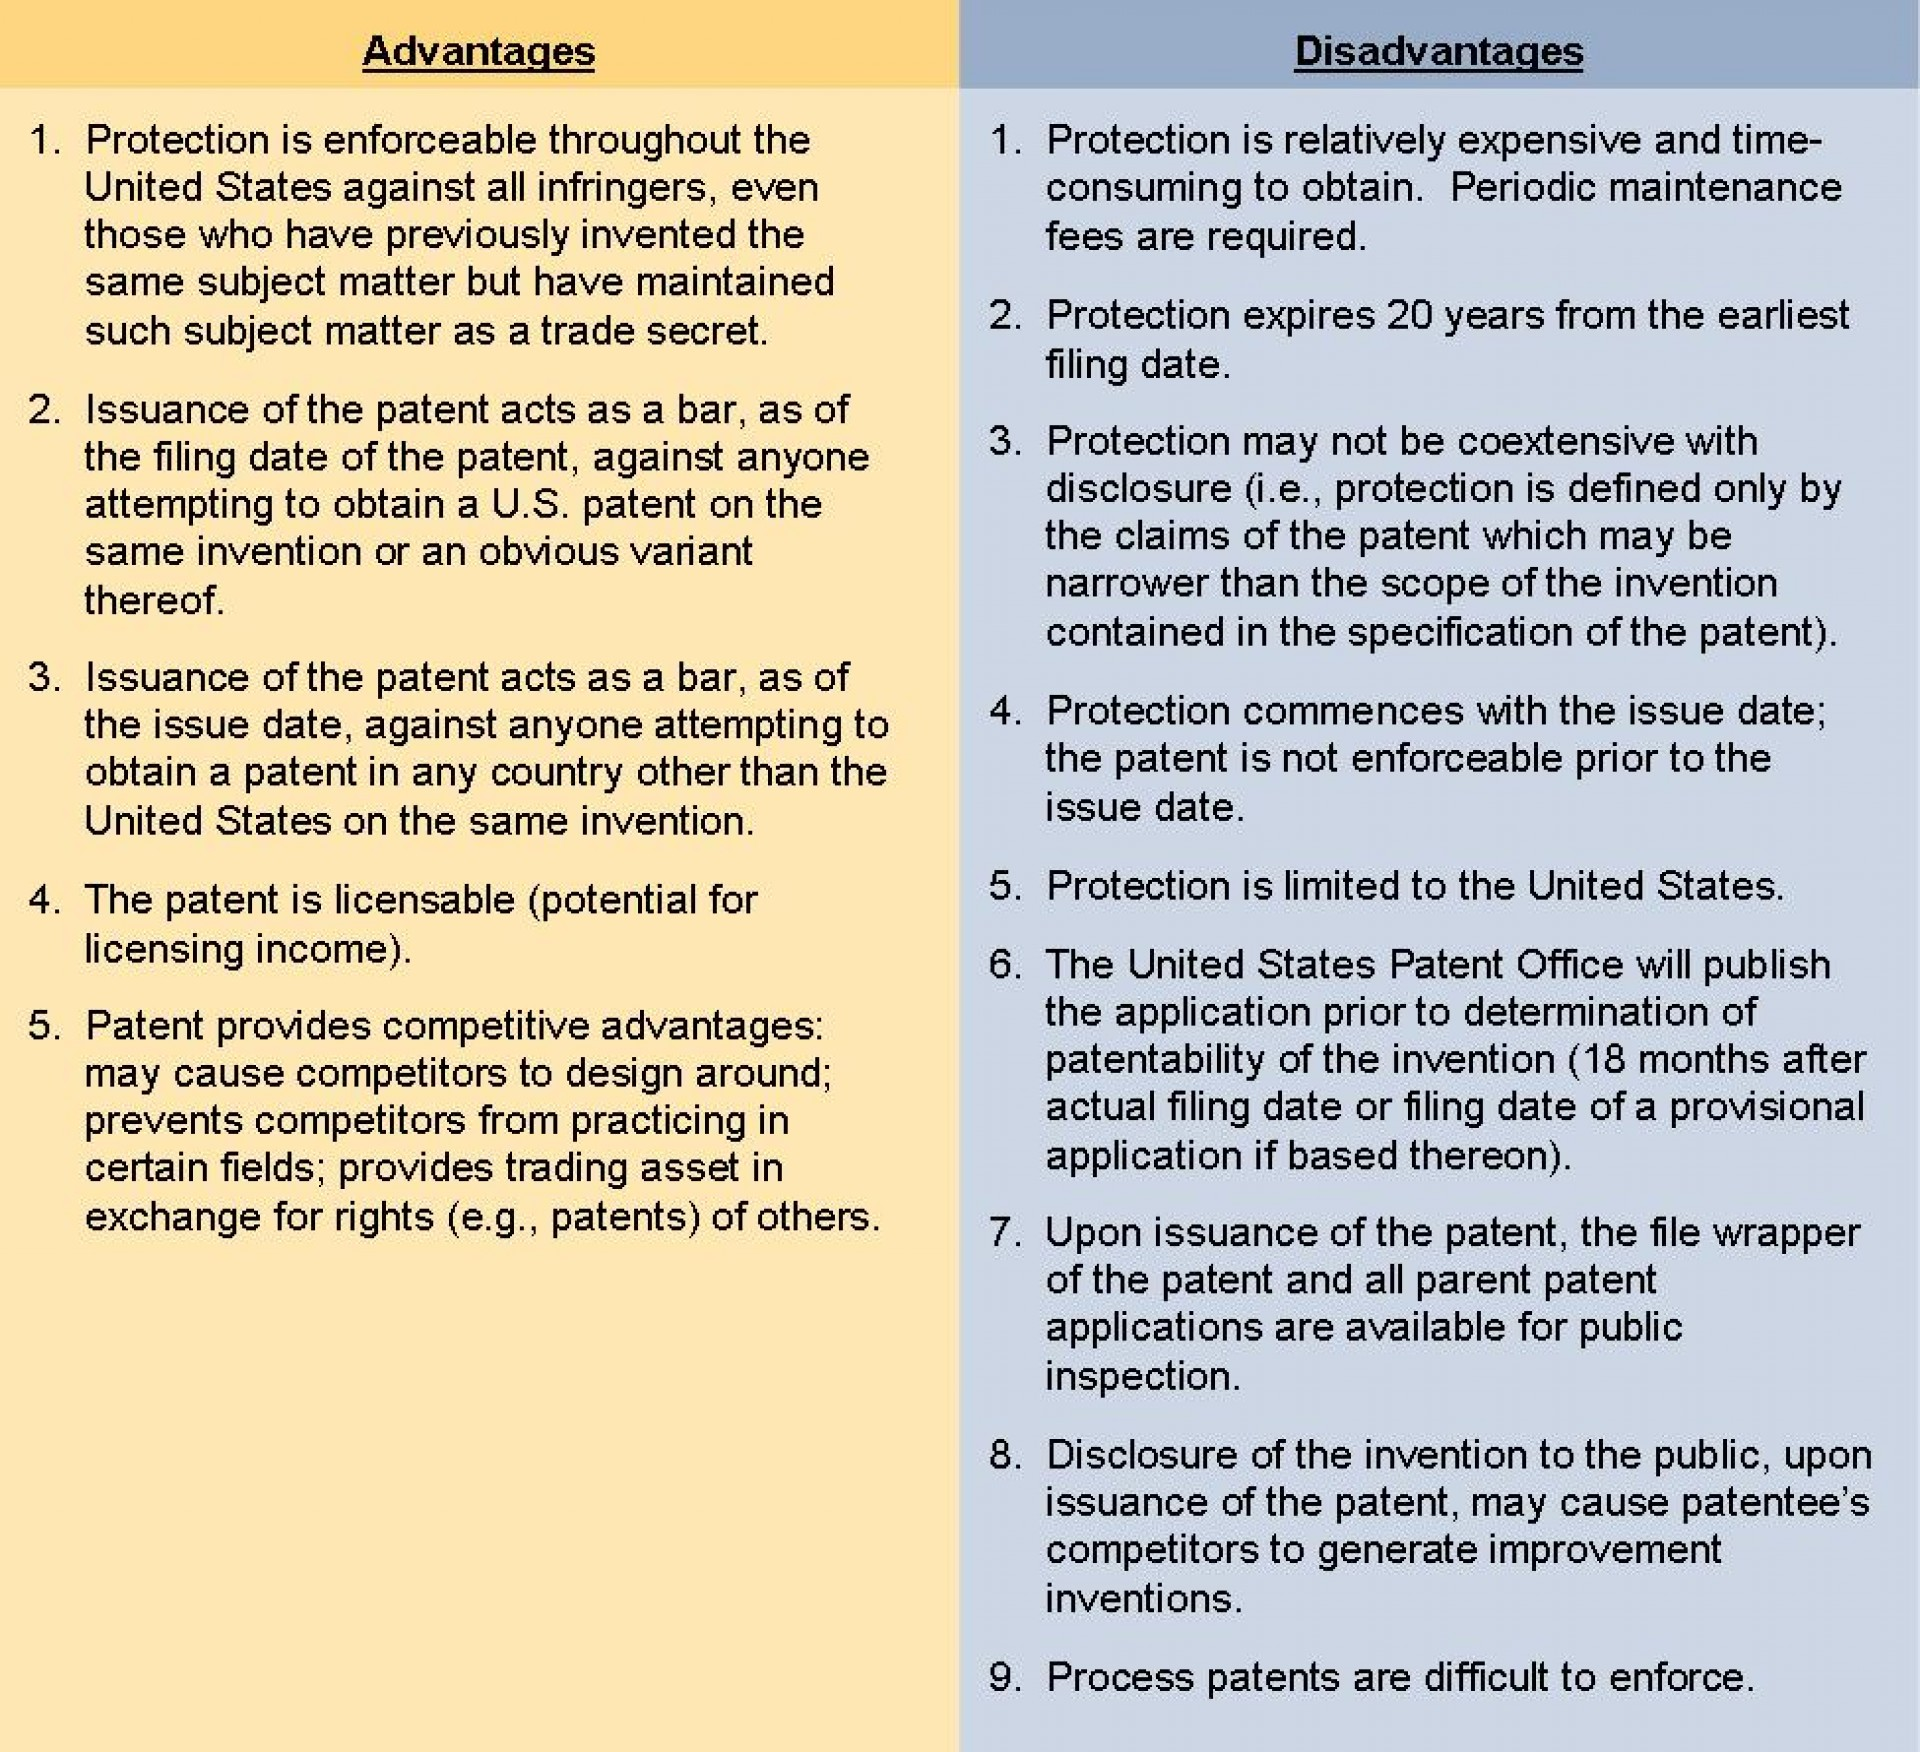 027 News87pic2 Advantage And Disadvantage Of Science Essay Shocking Advantages Disadvantages In Tamil Pdf With Quotes 1920